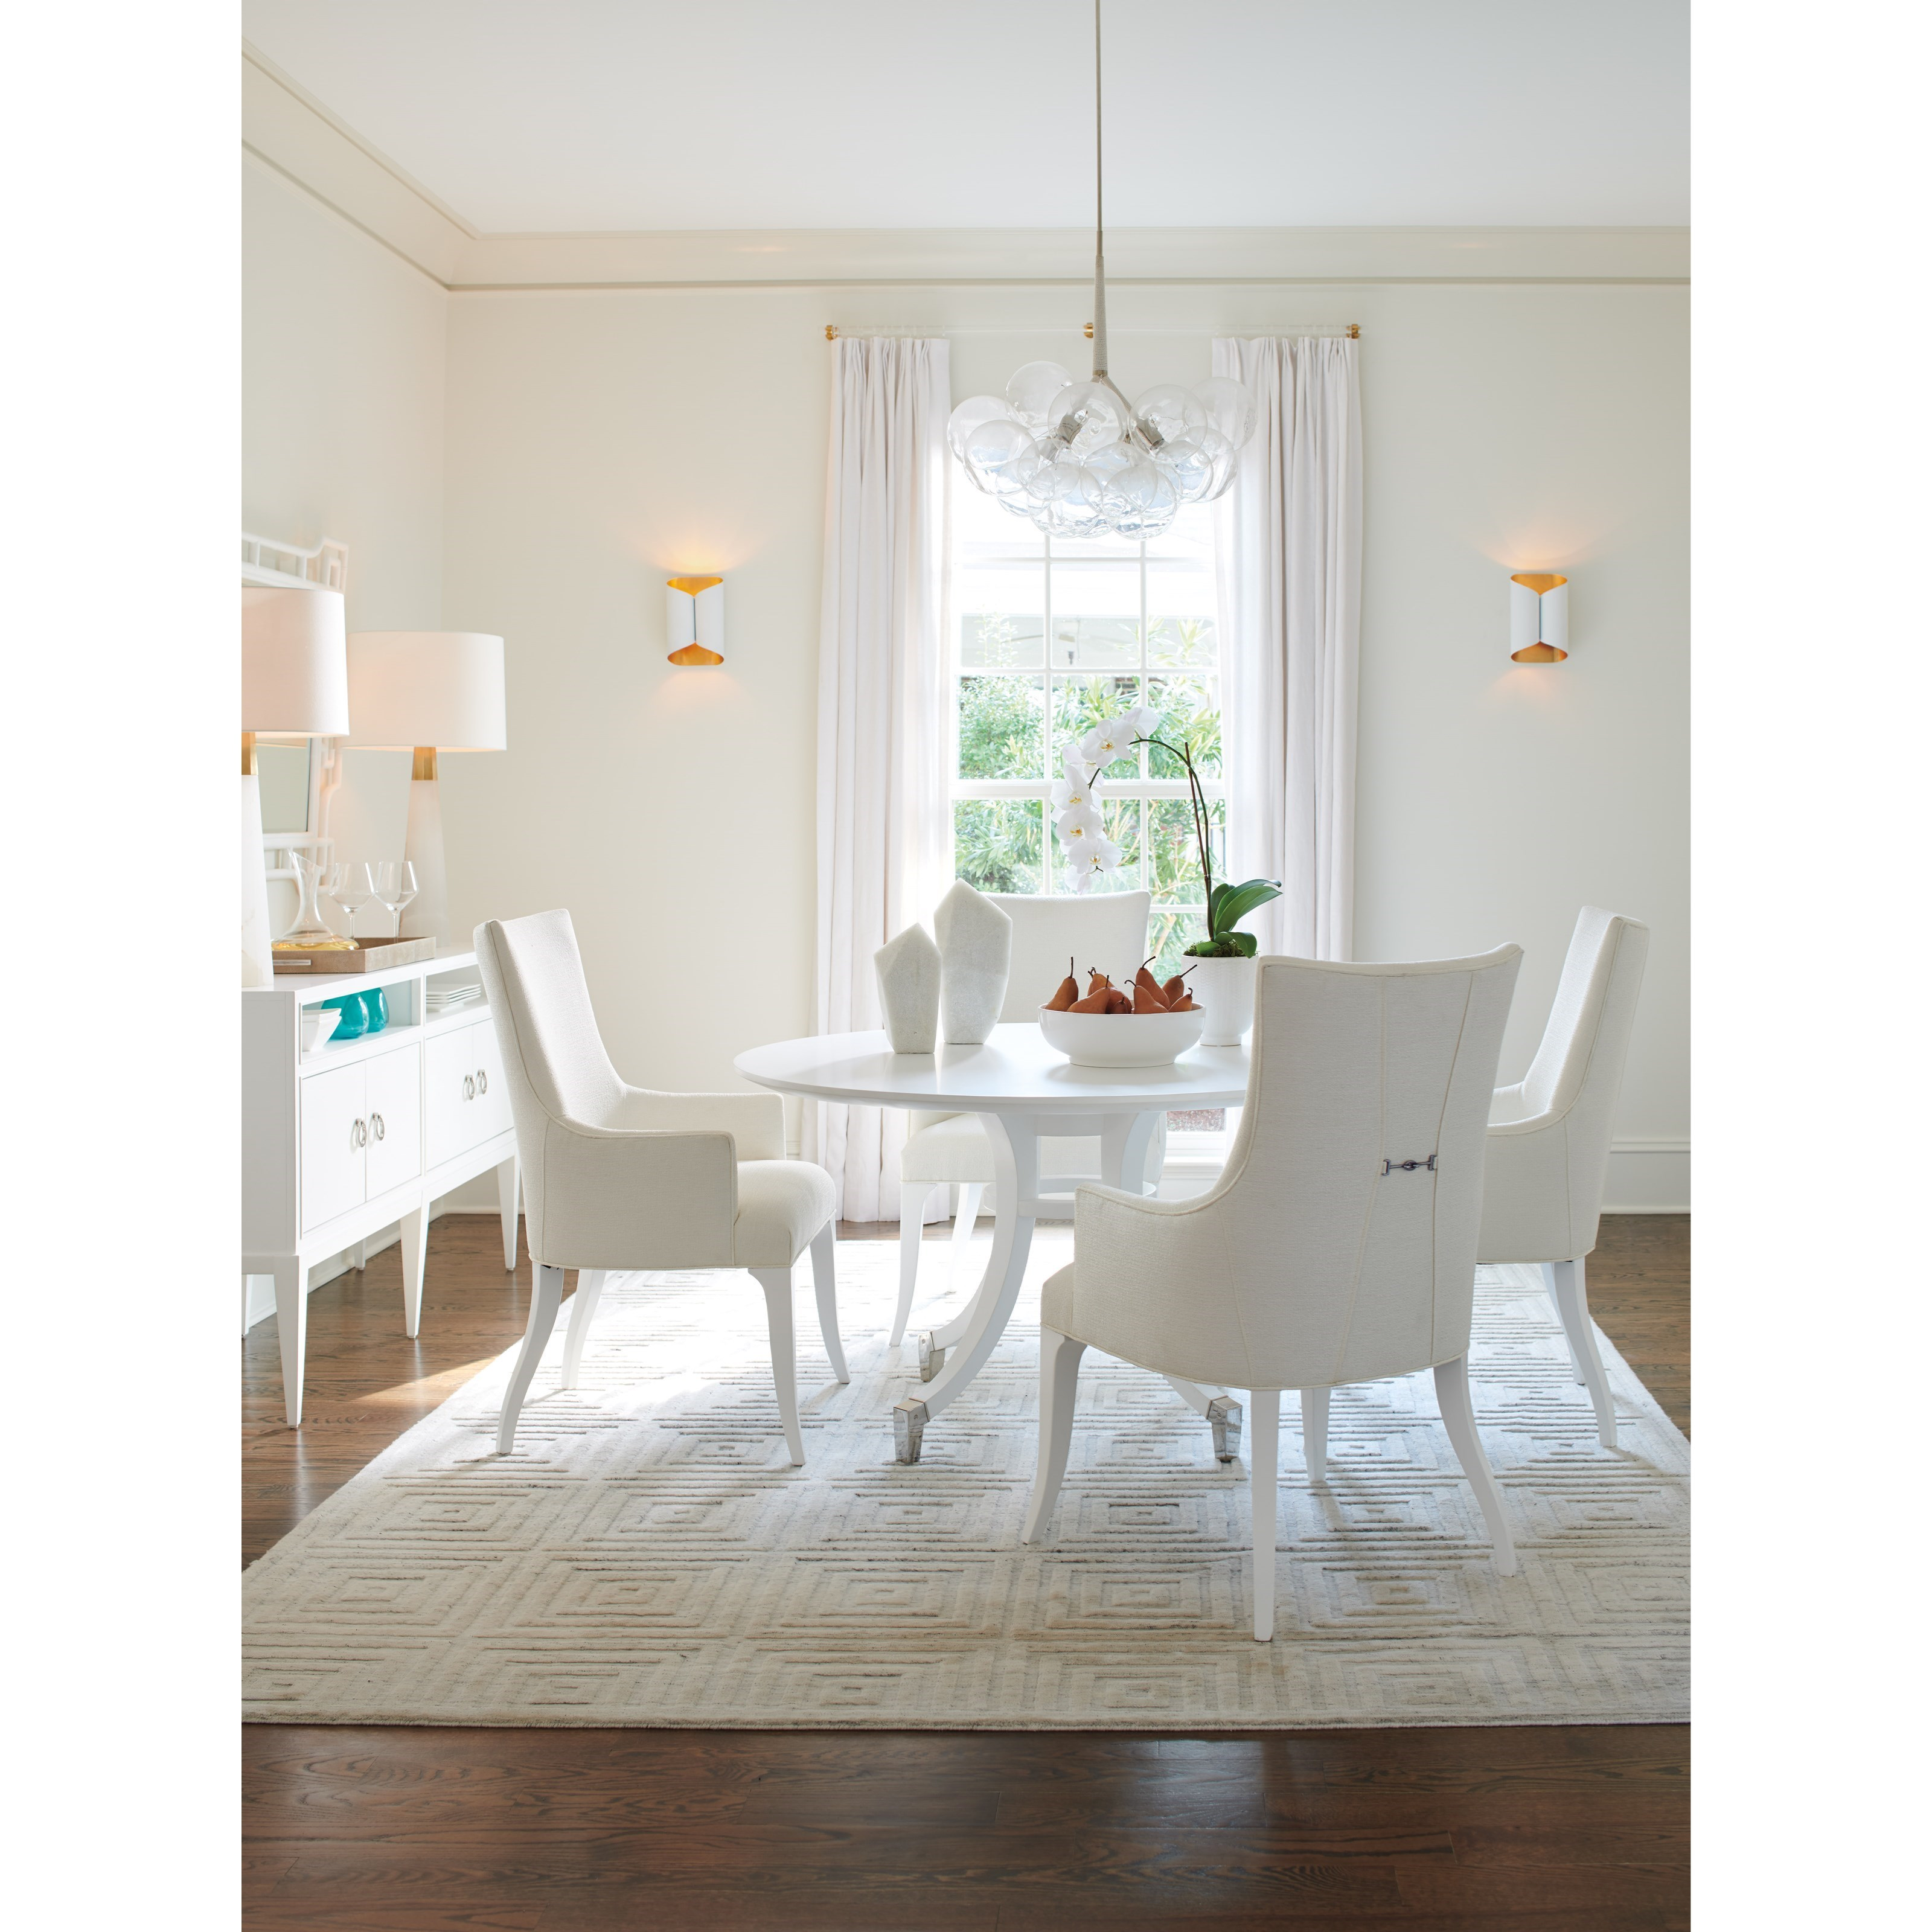 Avondale Casual Dining Room Group by Lexington at Johnny Janosik